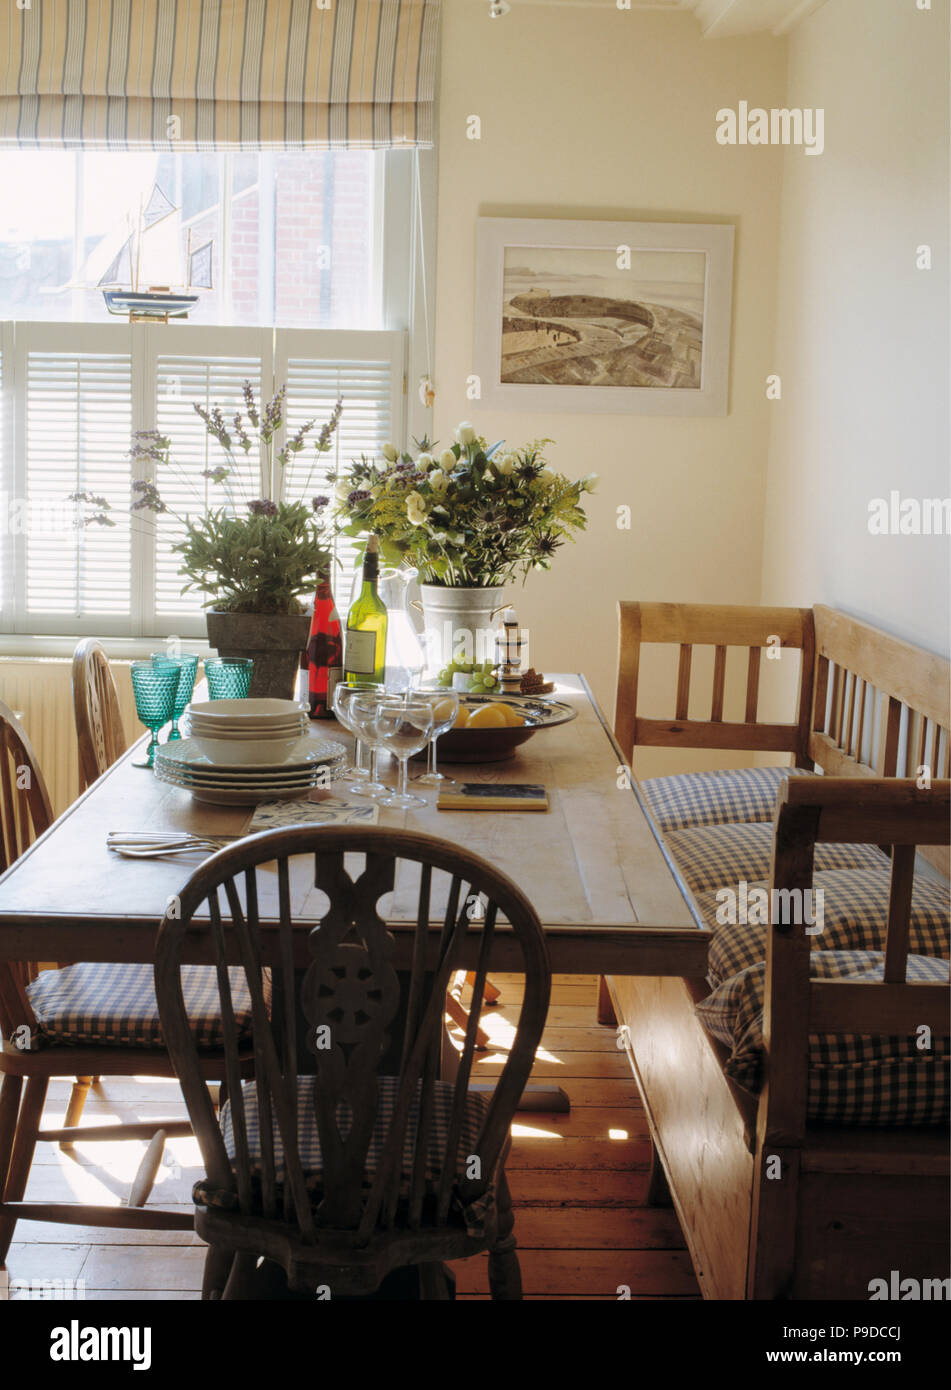 Striped Cushions On Old Wood Settle In Seaside Dining Room With Plates And  Glasses On Wooden Table With Windsor Chairs